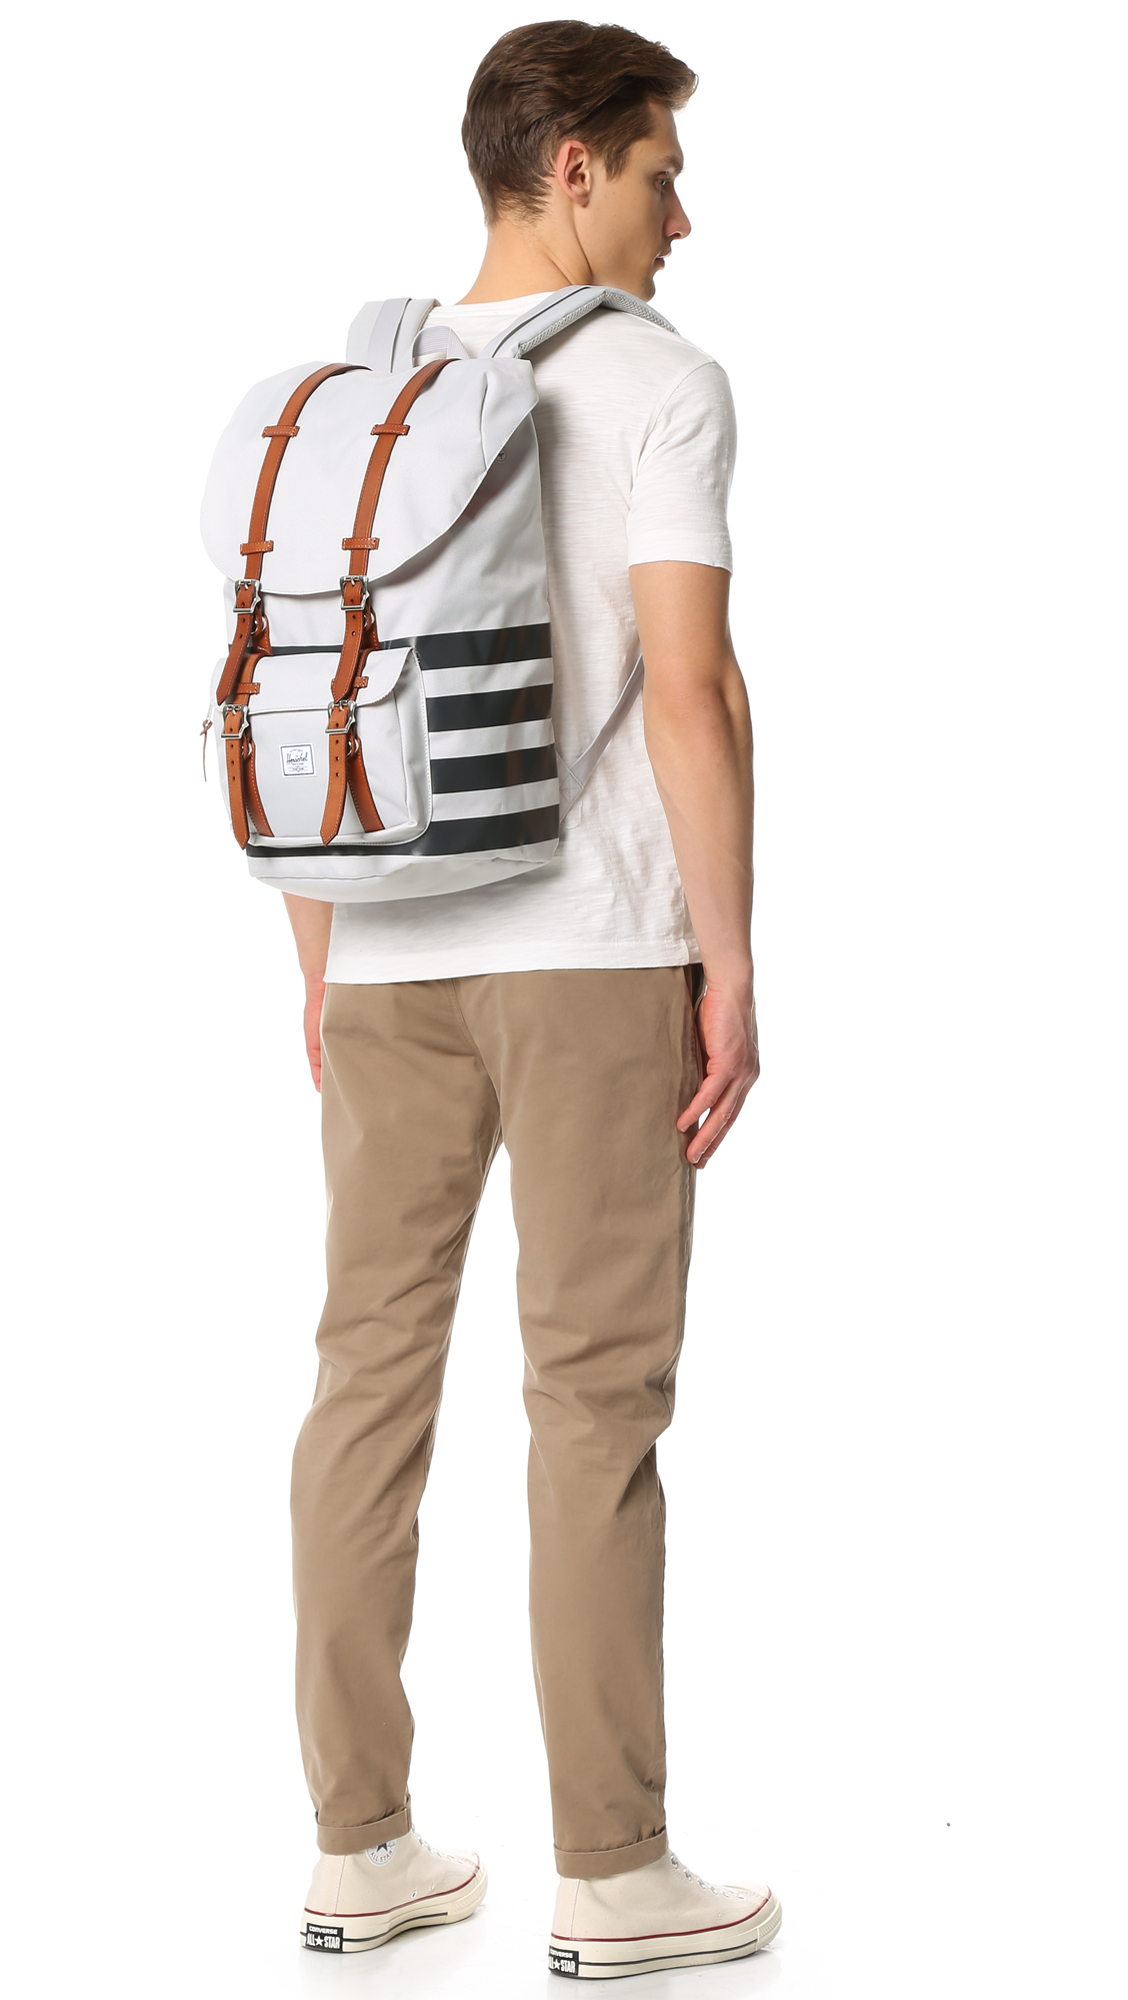 e05c2d54370 Lyst - Herschel Supply Co. Offset Little America Backpack in White ...